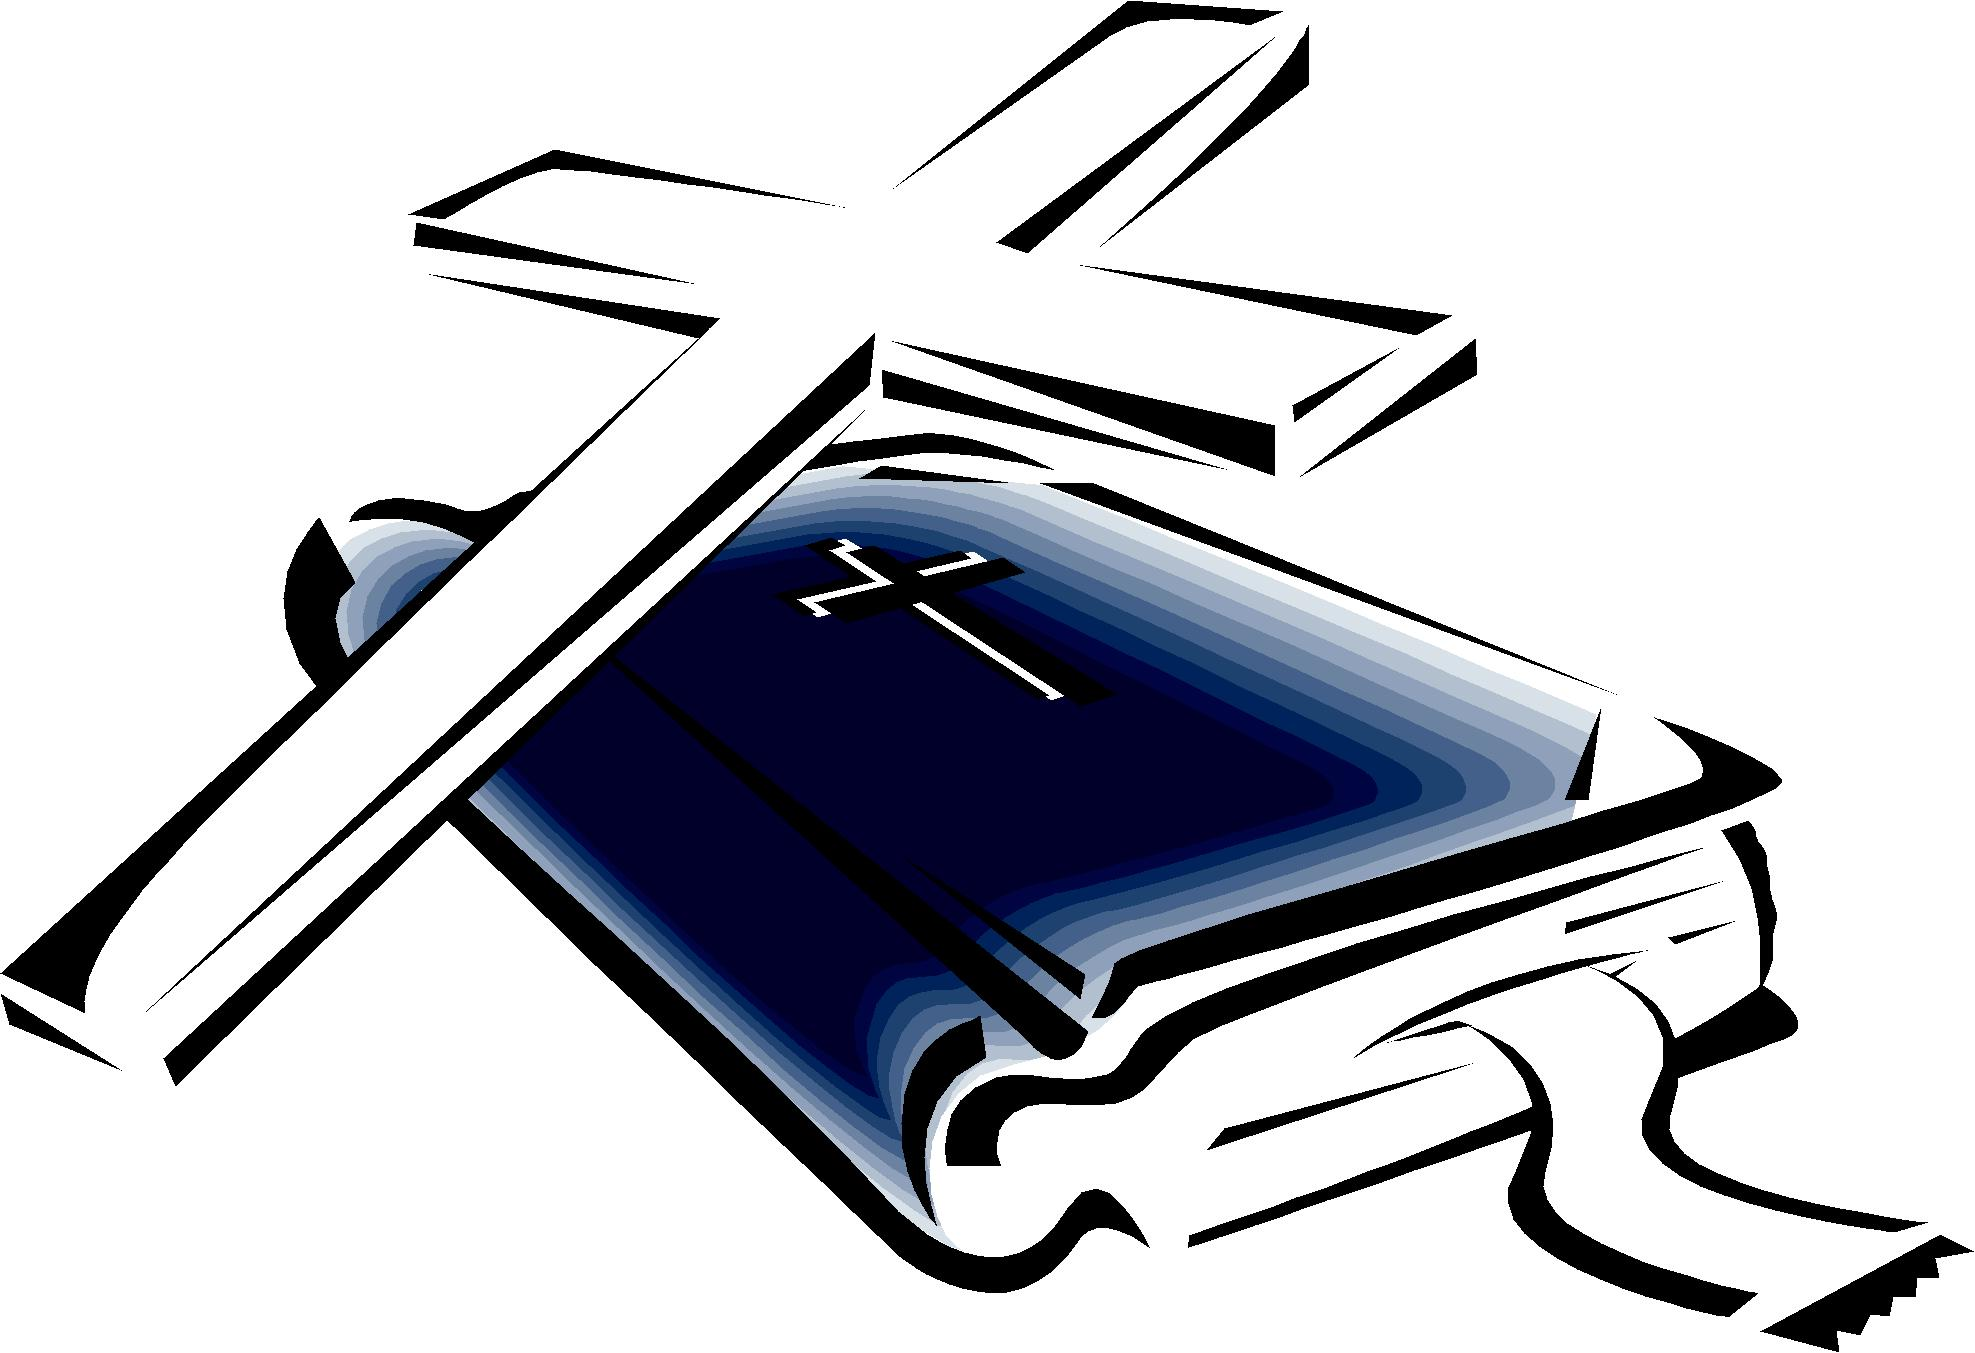 Crucifix clipart bible. Cross and